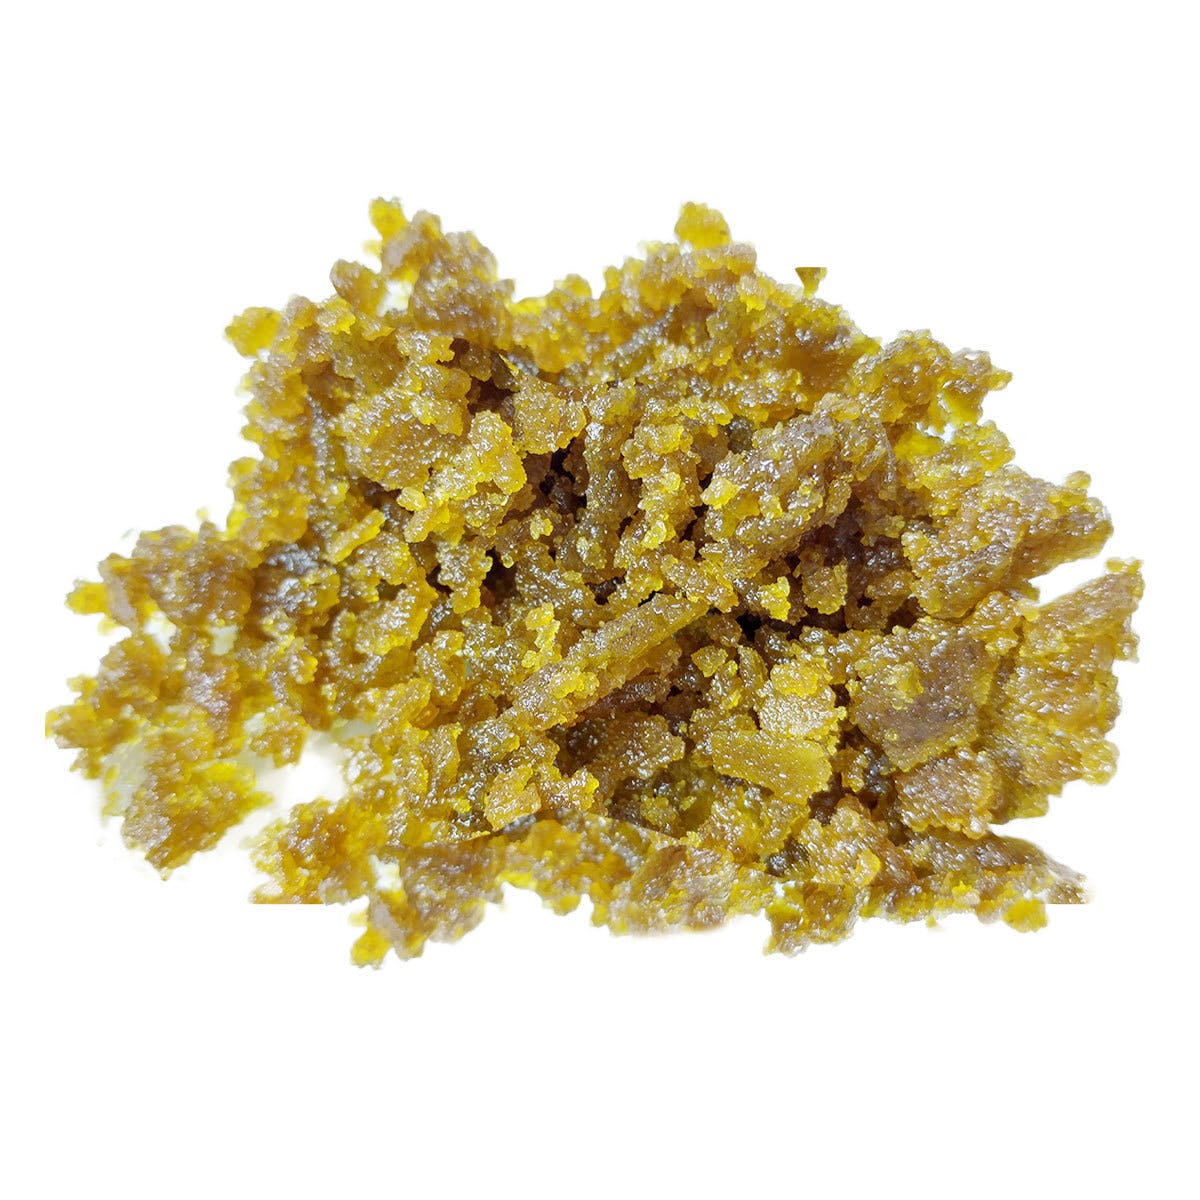 concentrate-made-products-1g-live-resin-g-13